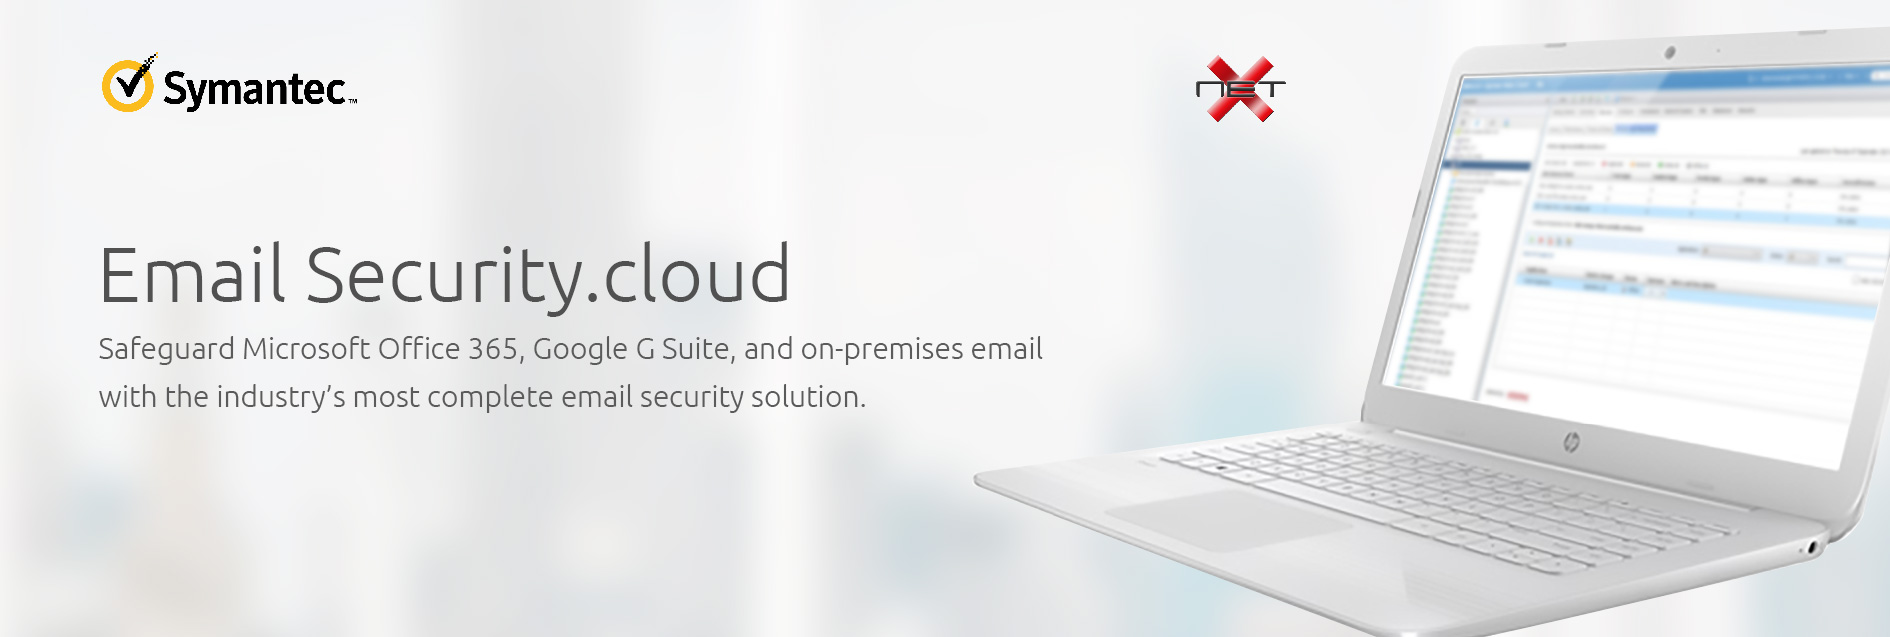 netx-symantec-Email-Security.cloud-banner